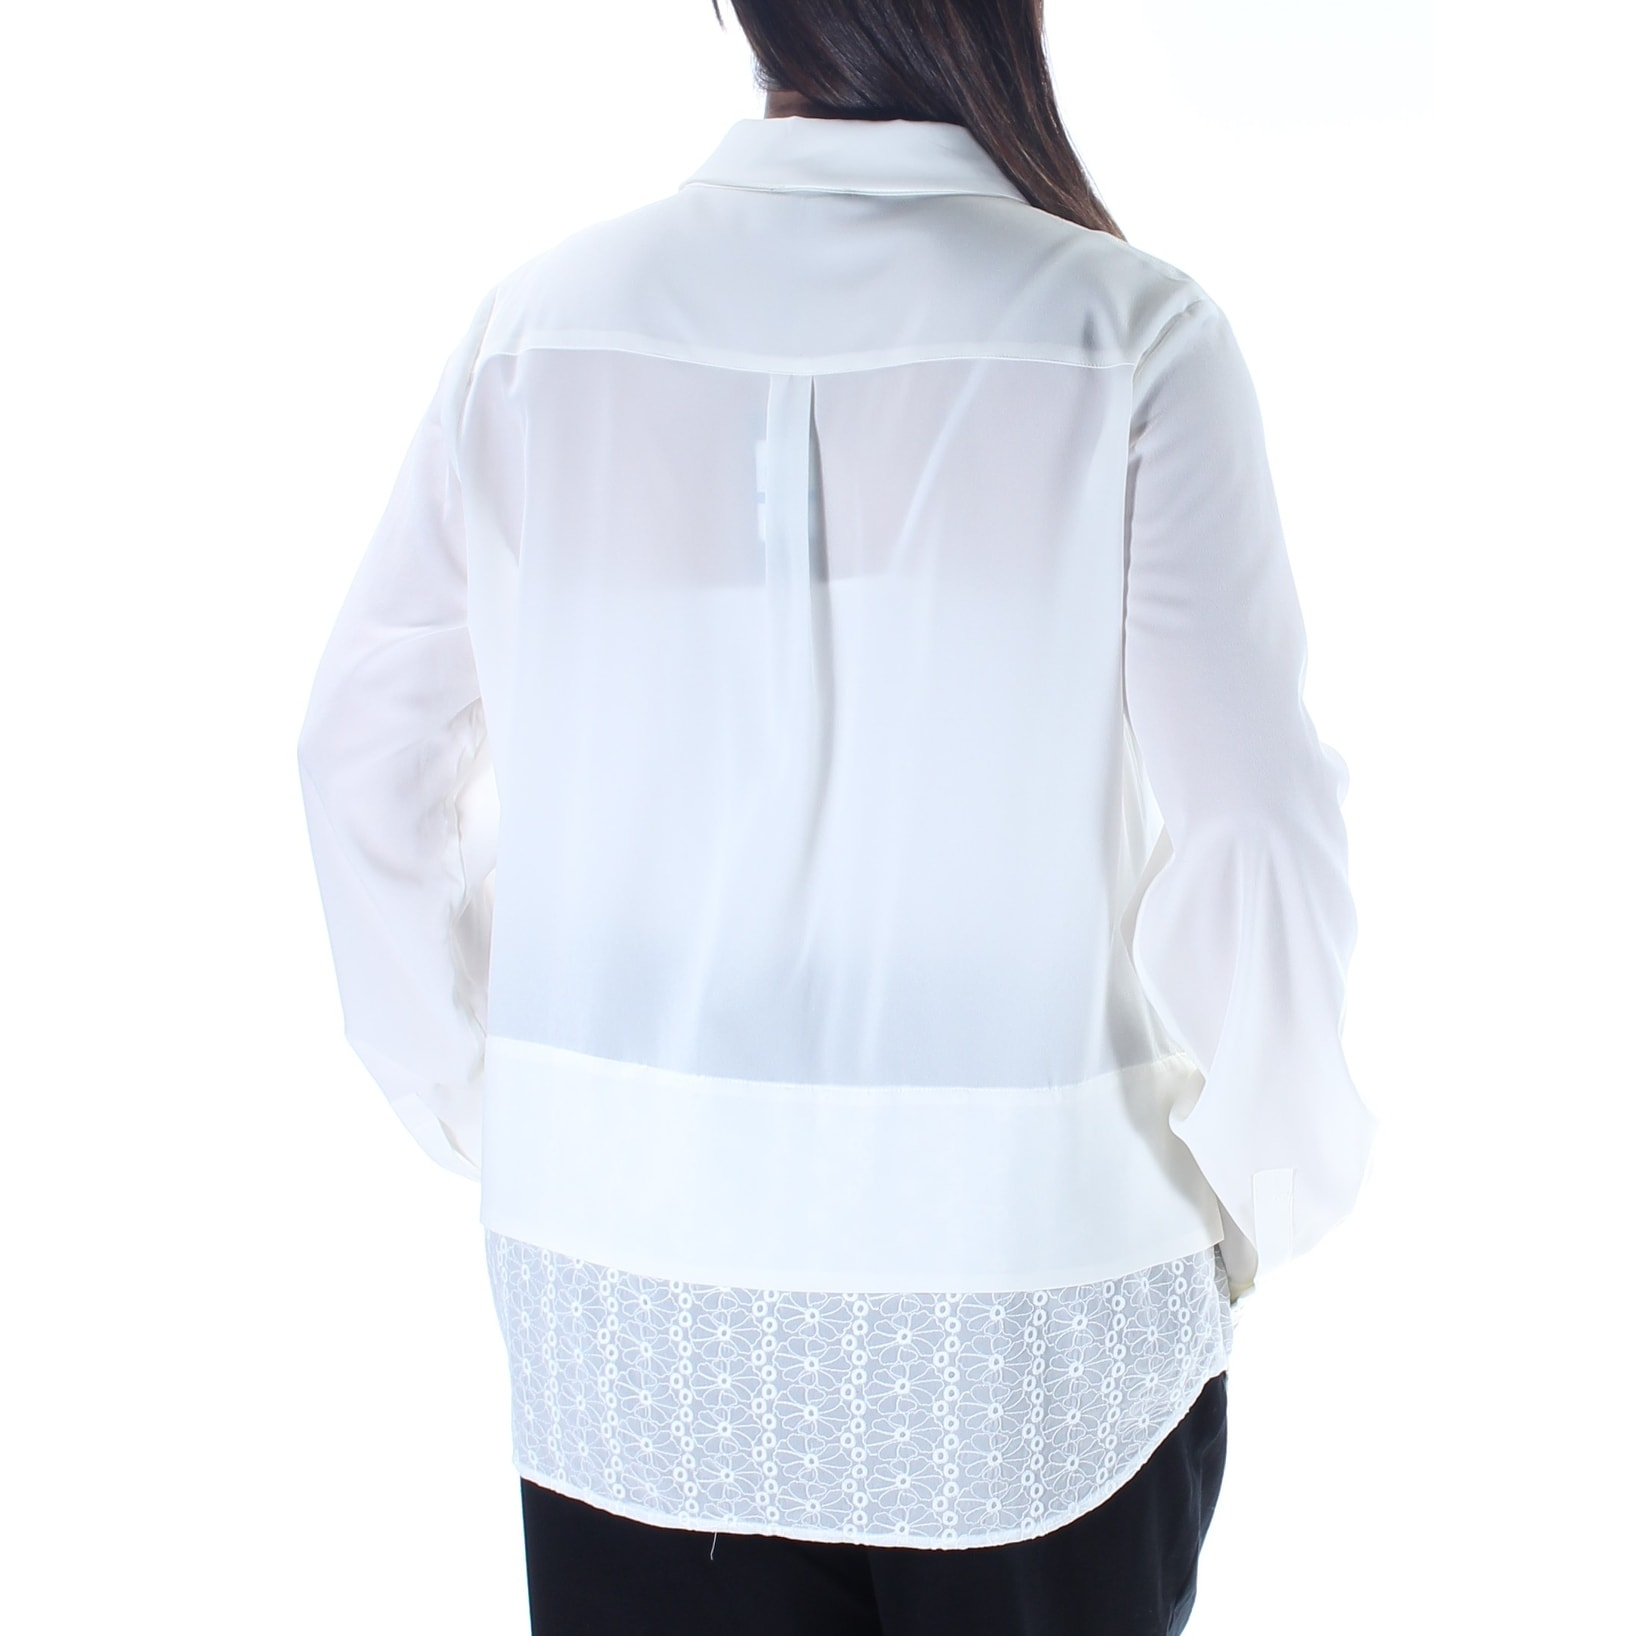 263c349a Shop TOMMY HILFIGER Womens Ivory Cuffed Collared Button Up Top Size: XL -  On Sale - Free Shipping On Orders Over $45 - Overstock - 21329630